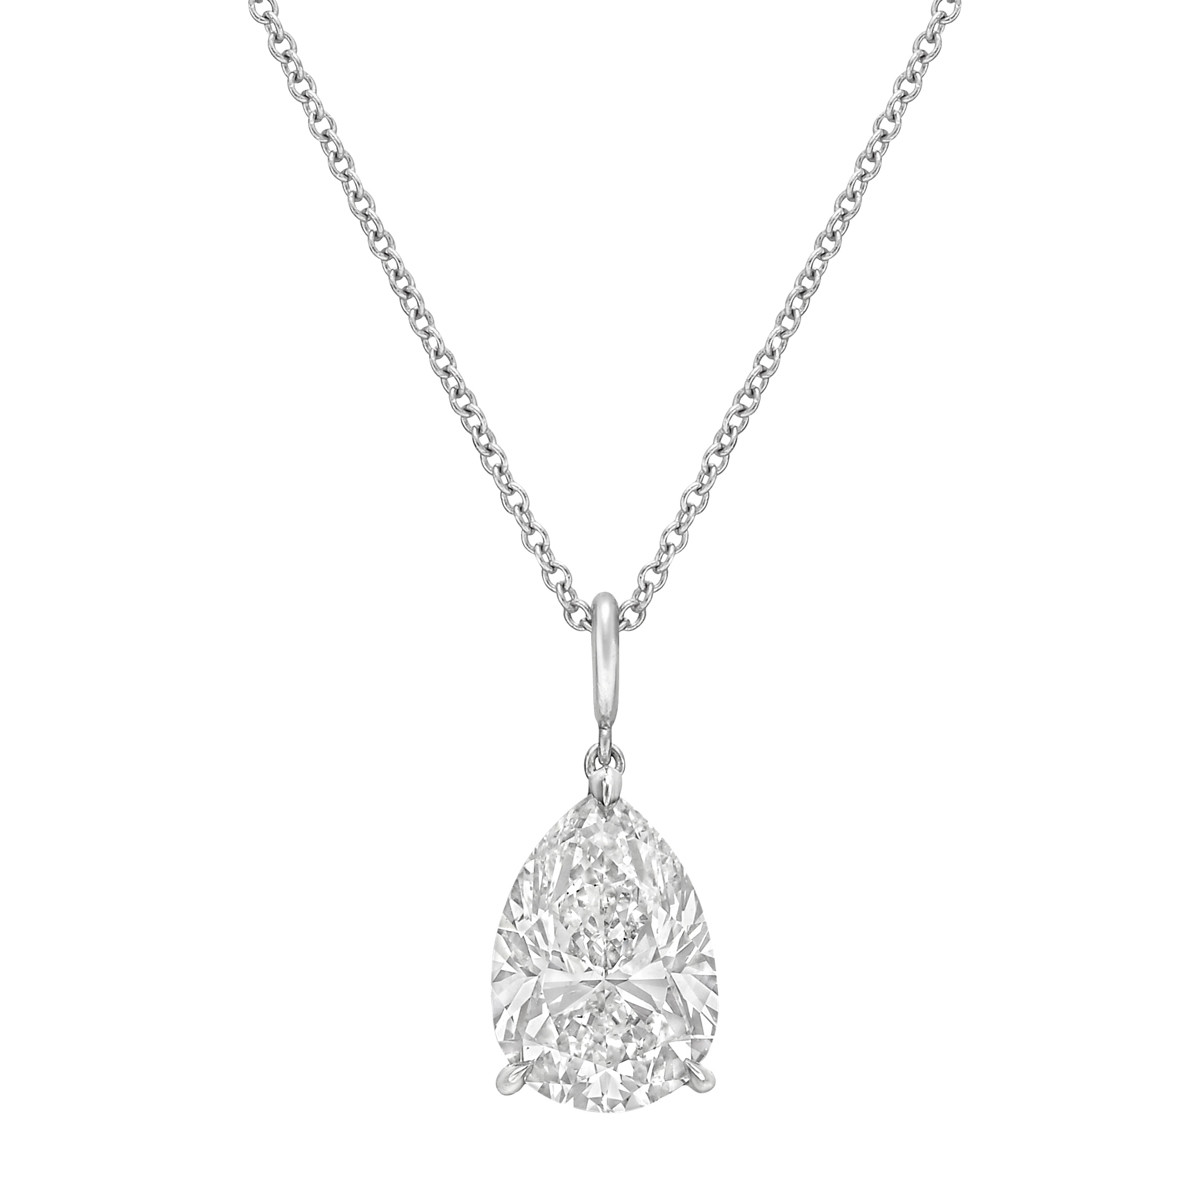 3.50 Carat Pear-Shaped Diamond Solitaire Pendant